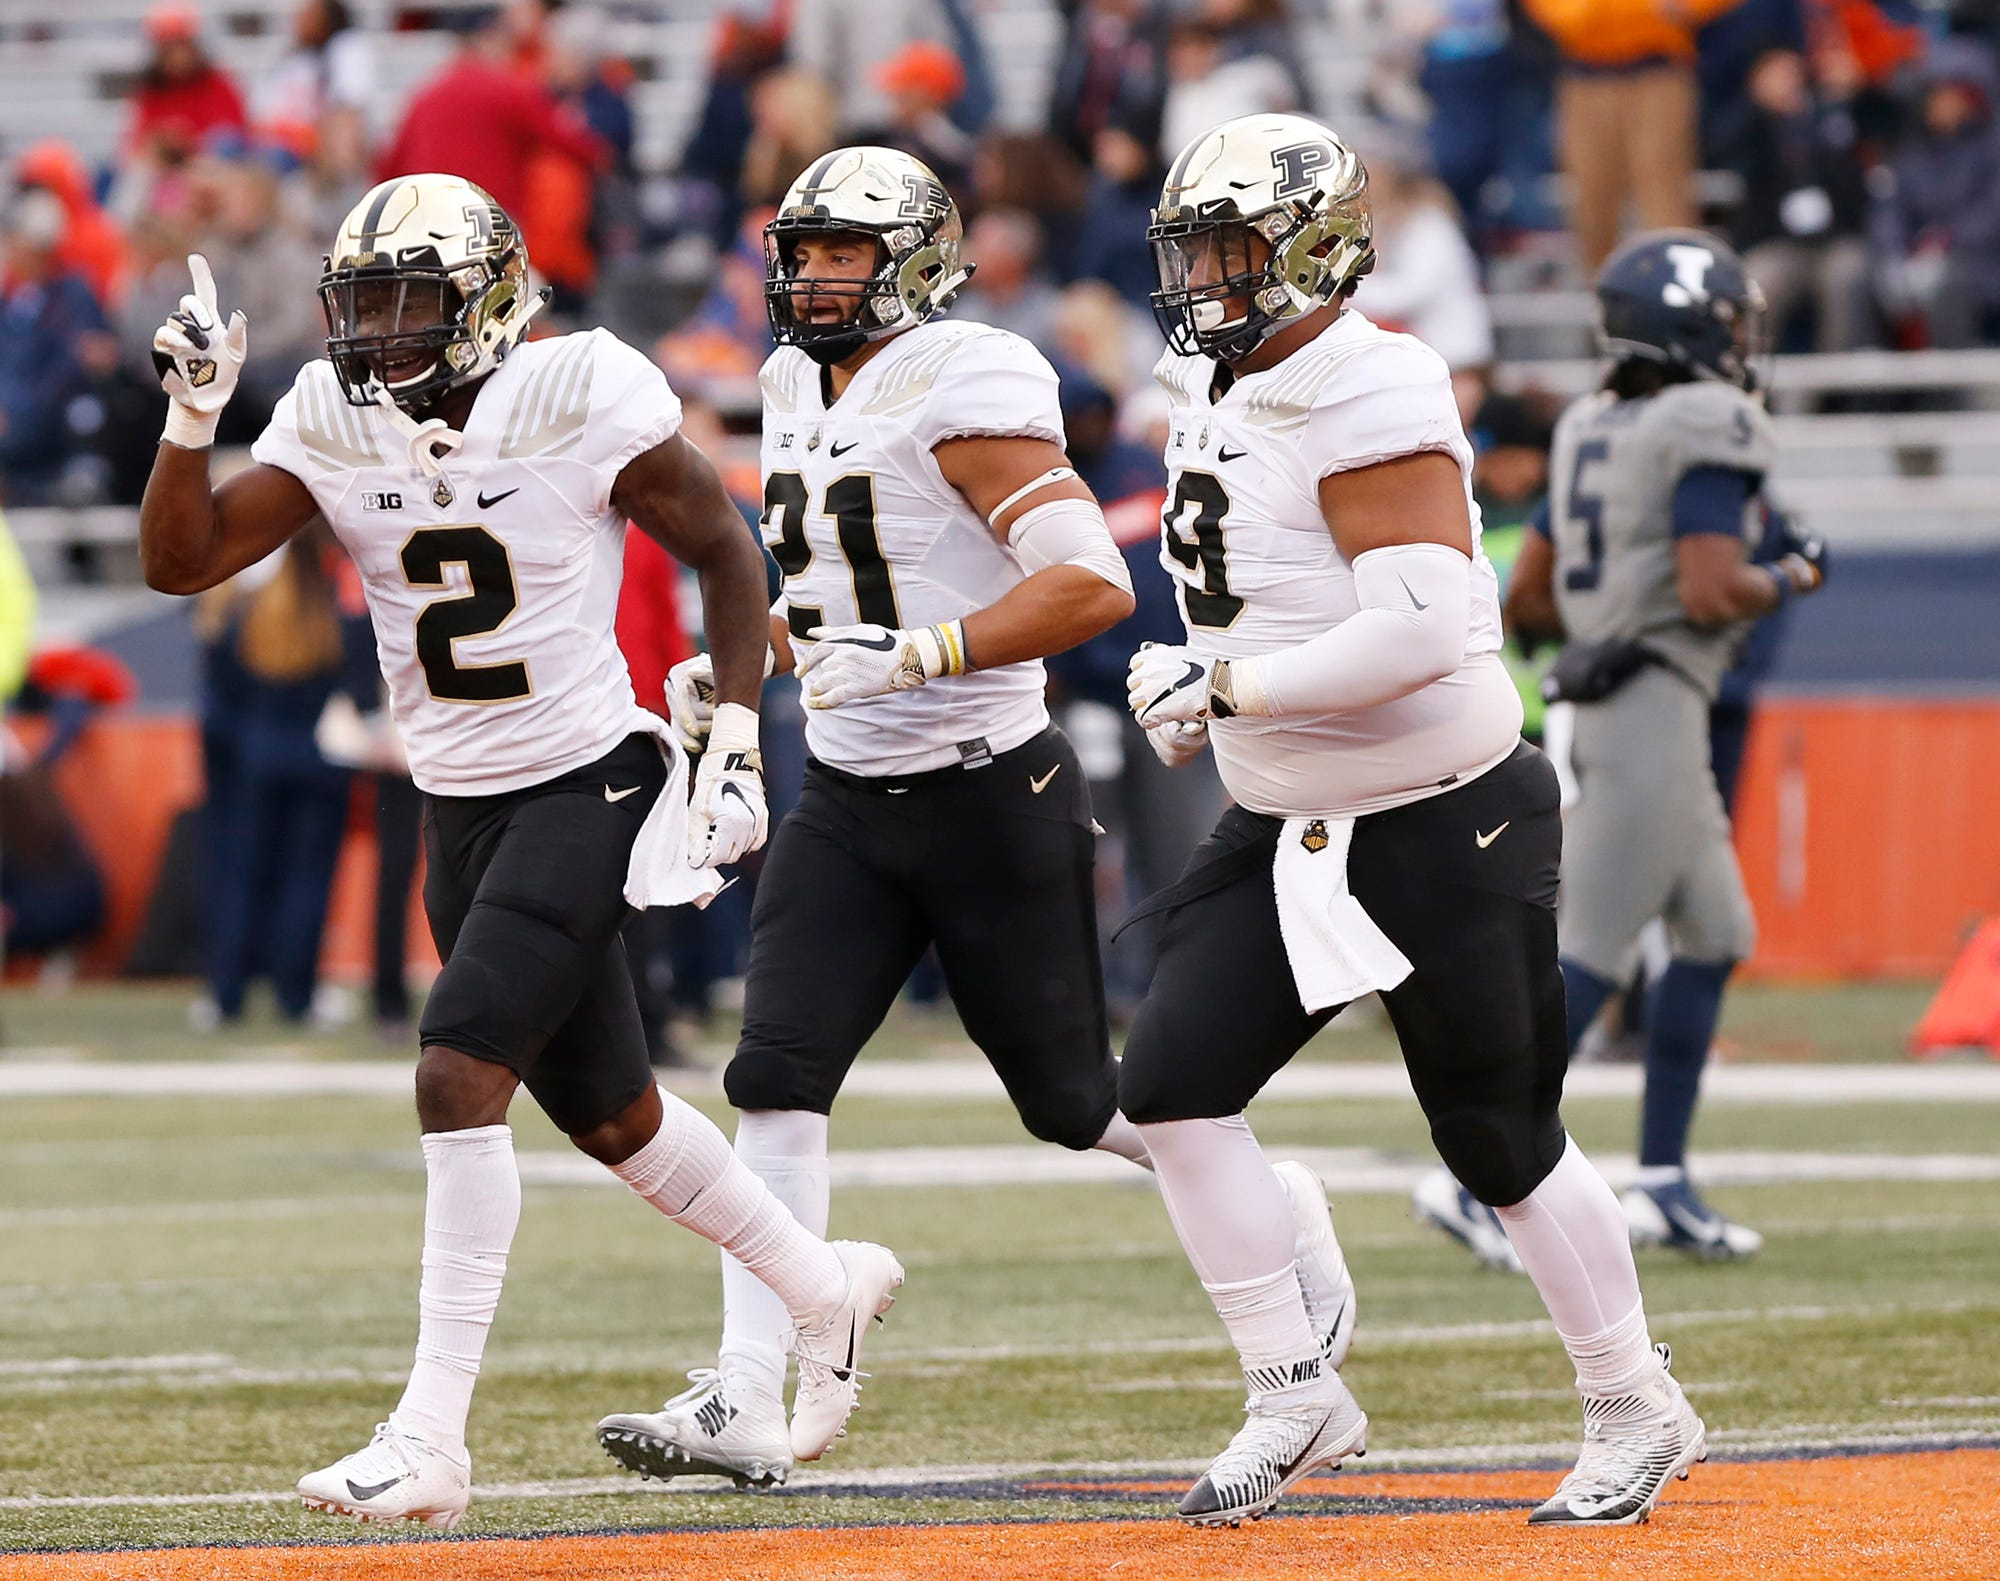 Kenneth Major of Purdue, left, reacts after he intercepted an Illinois pass with 9:43 remaining Saturday, October 13, 2018, in Champaign, Illinois. Purdue thumped Illinois 46-7.